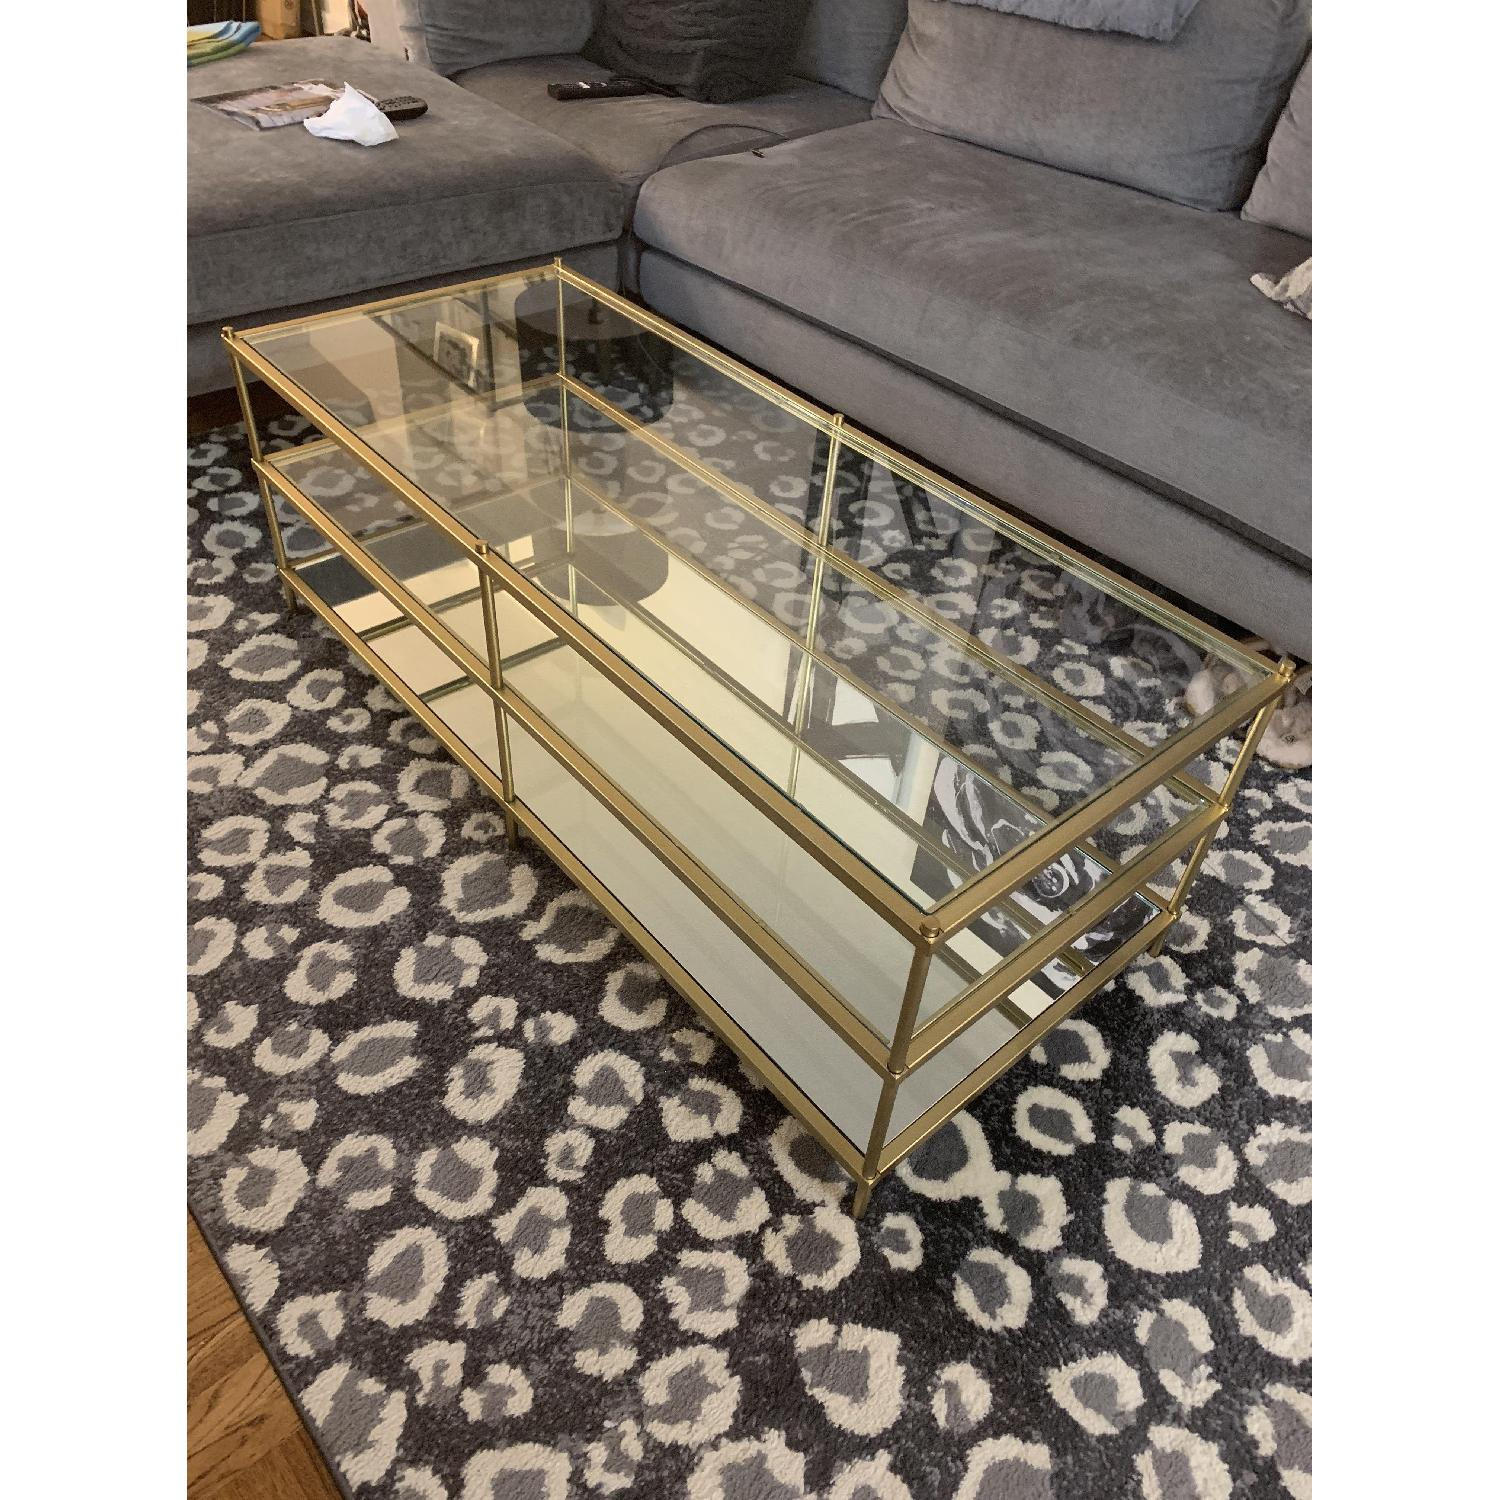 West Elm 3 Tier Glass/Gold Coffee Table-0